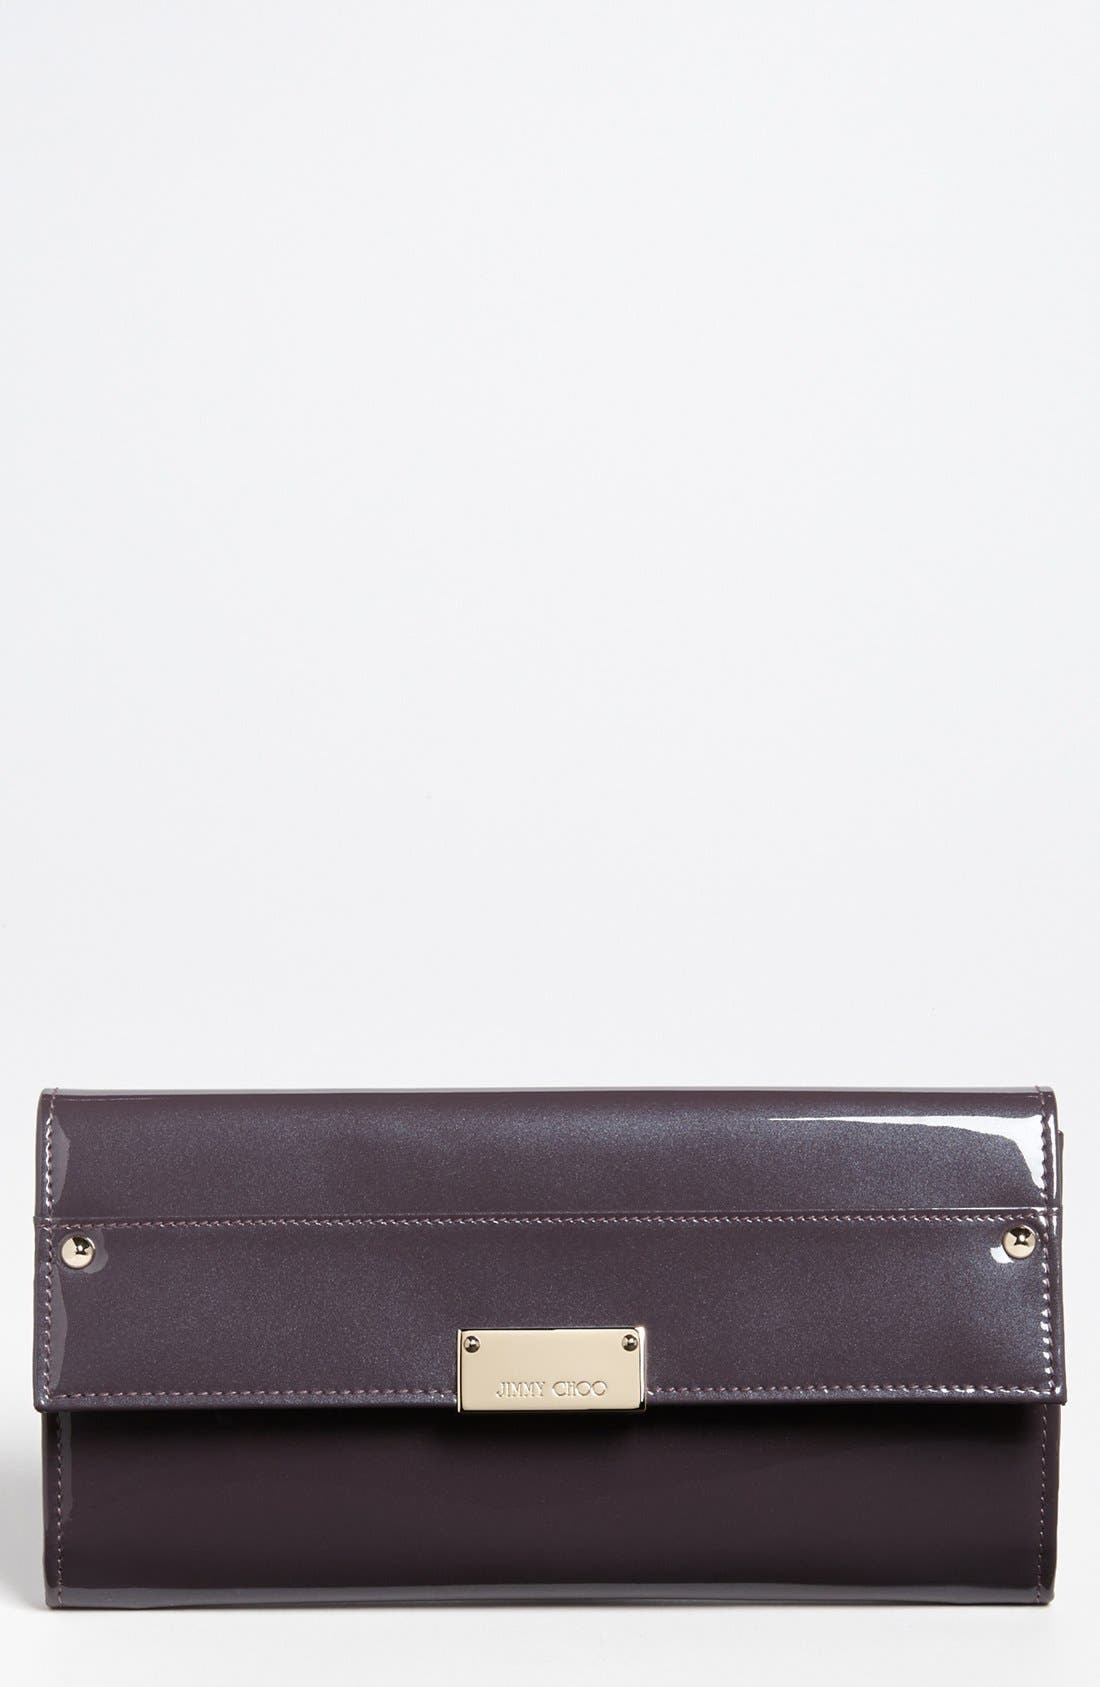 Alternate Image 1 Selected - Jimmy Choo 'Reese' Patent Leather Clutch